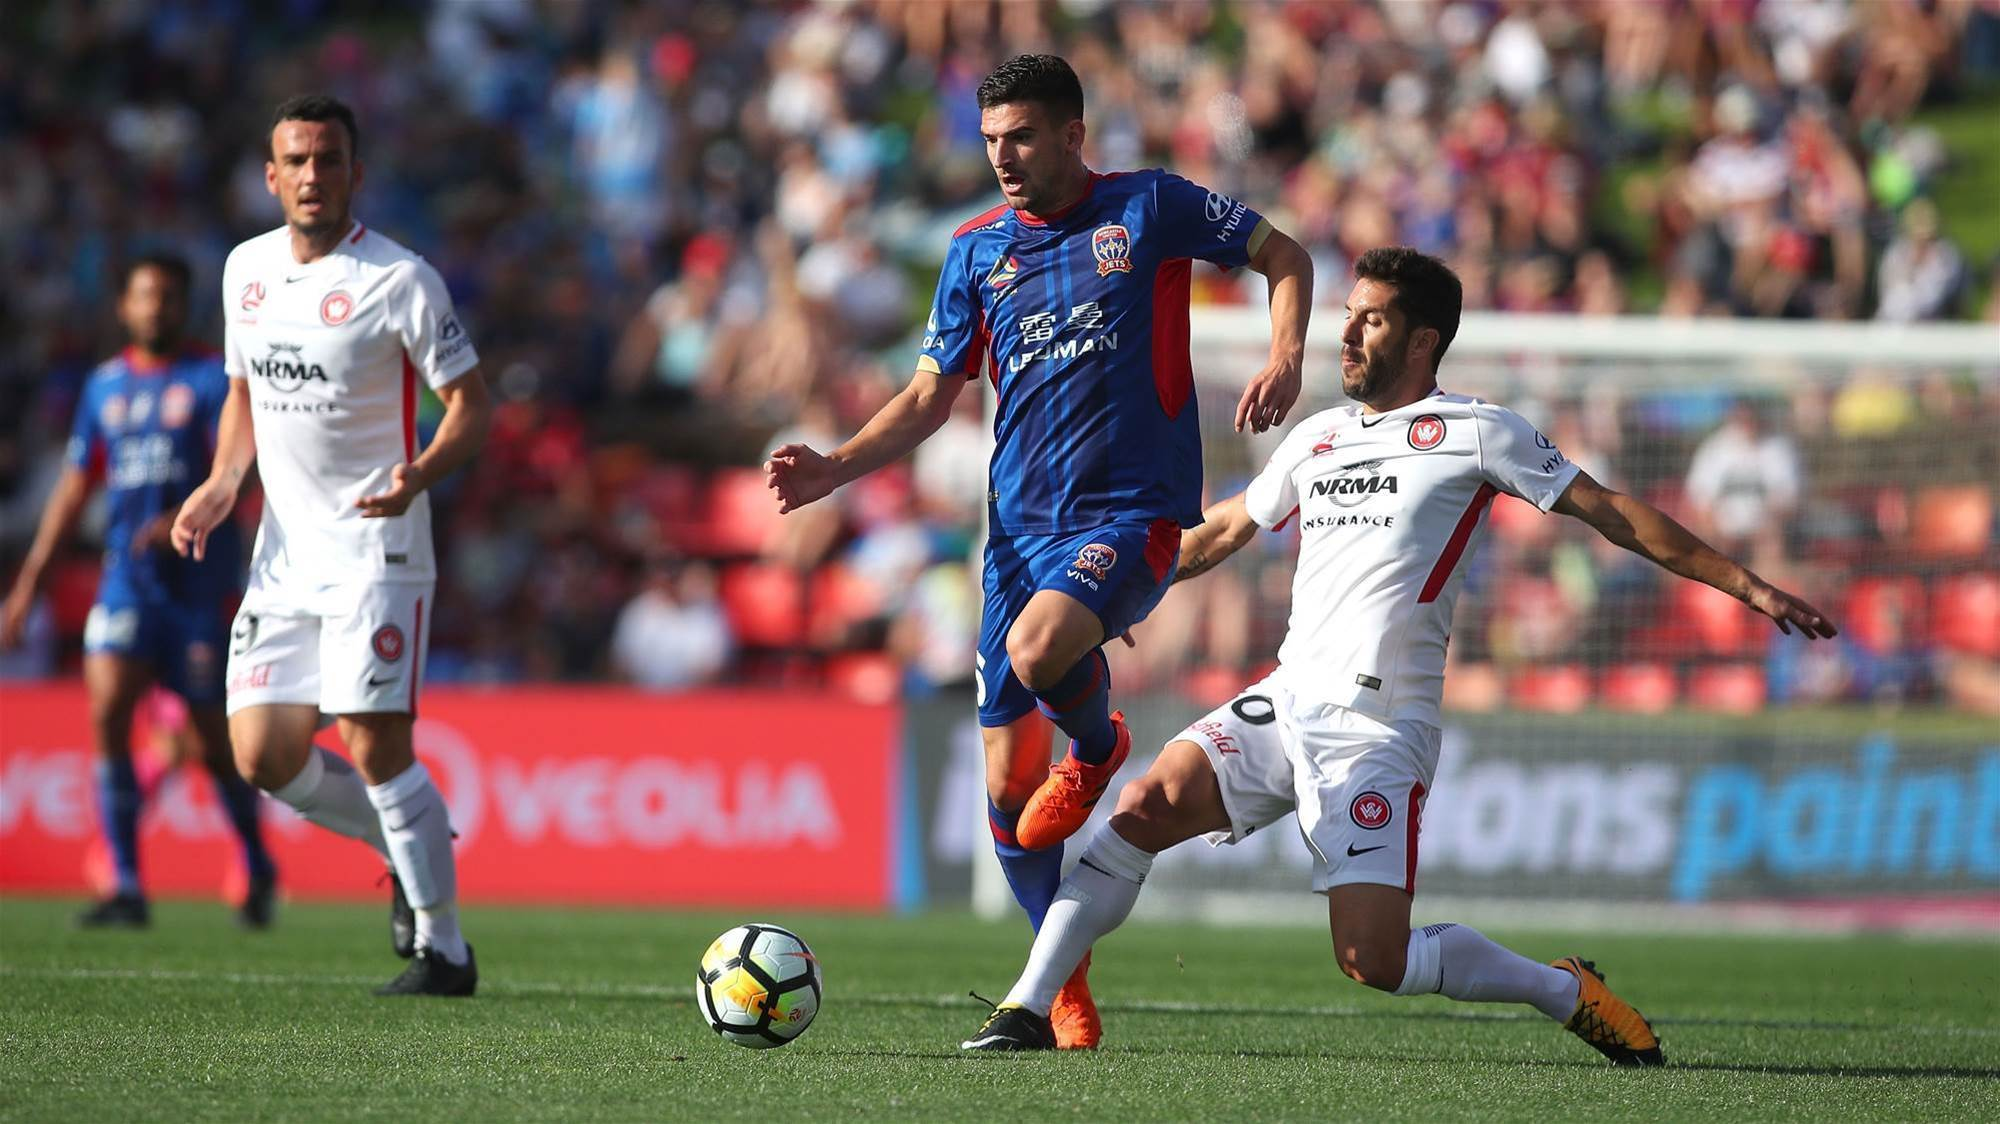 Newcastle Jets vs Western Sydney Wanderers player ratings